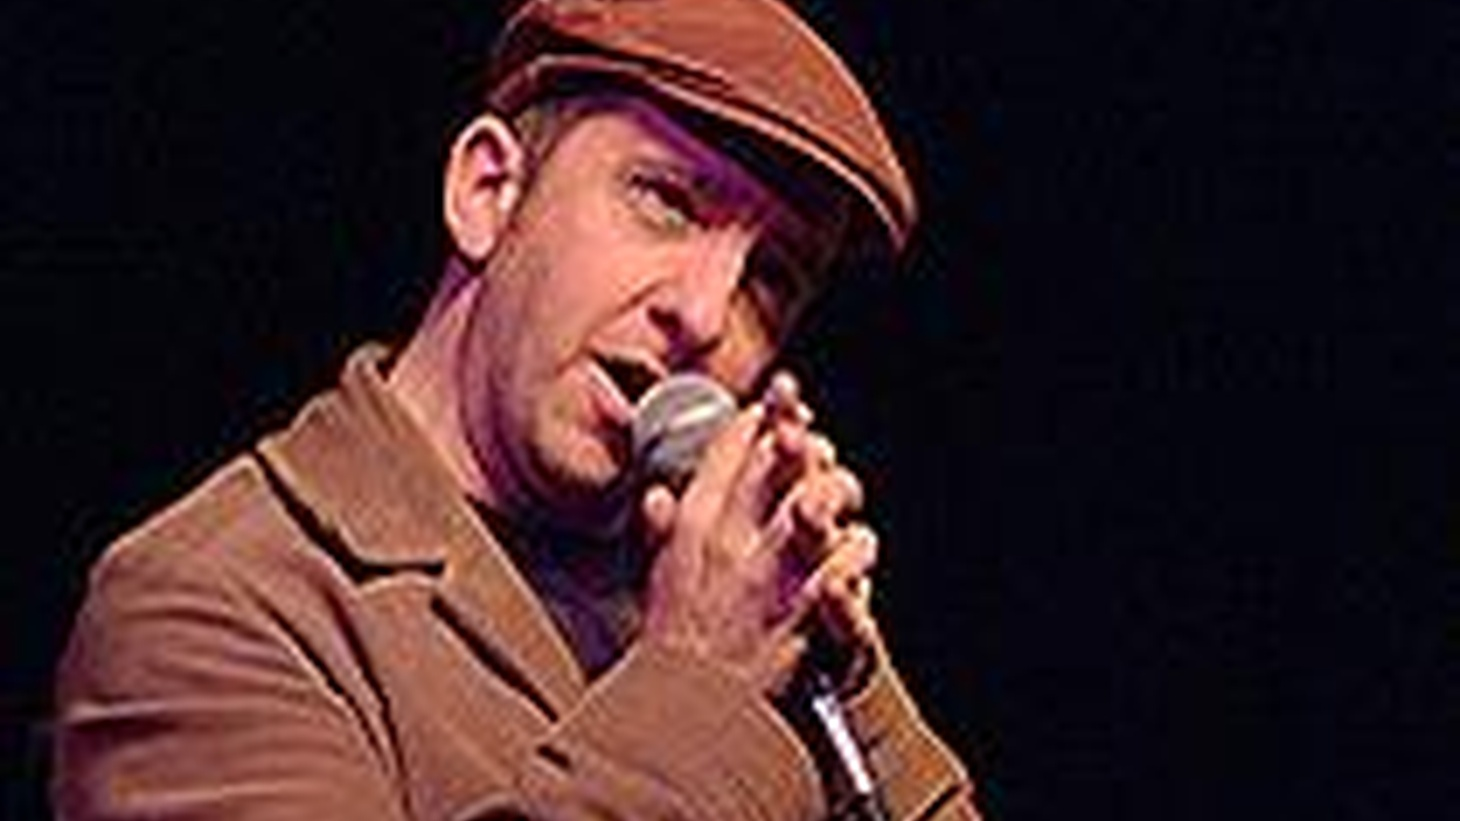 Stephin Merritt of the Magnetic Fields guest DJs at 11 pm.